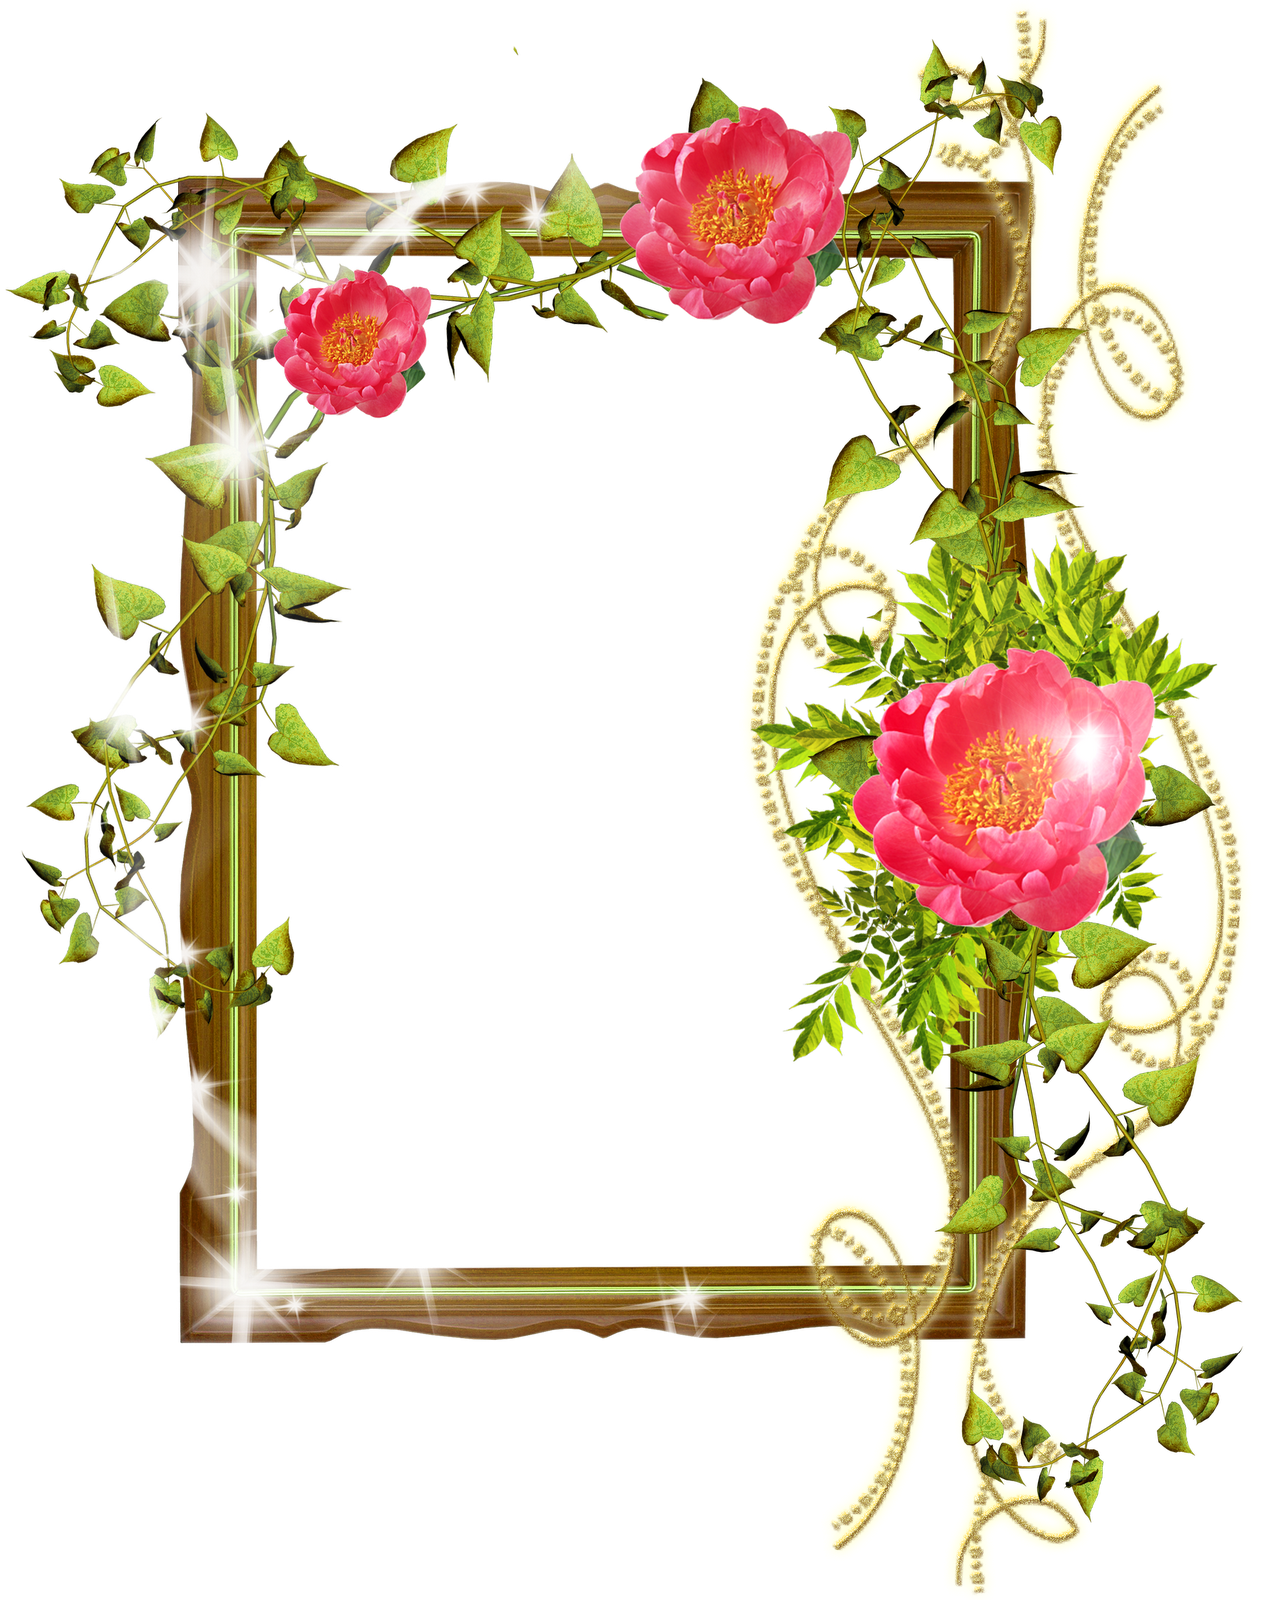 Flower Frame Photoshop Background Png image #24722